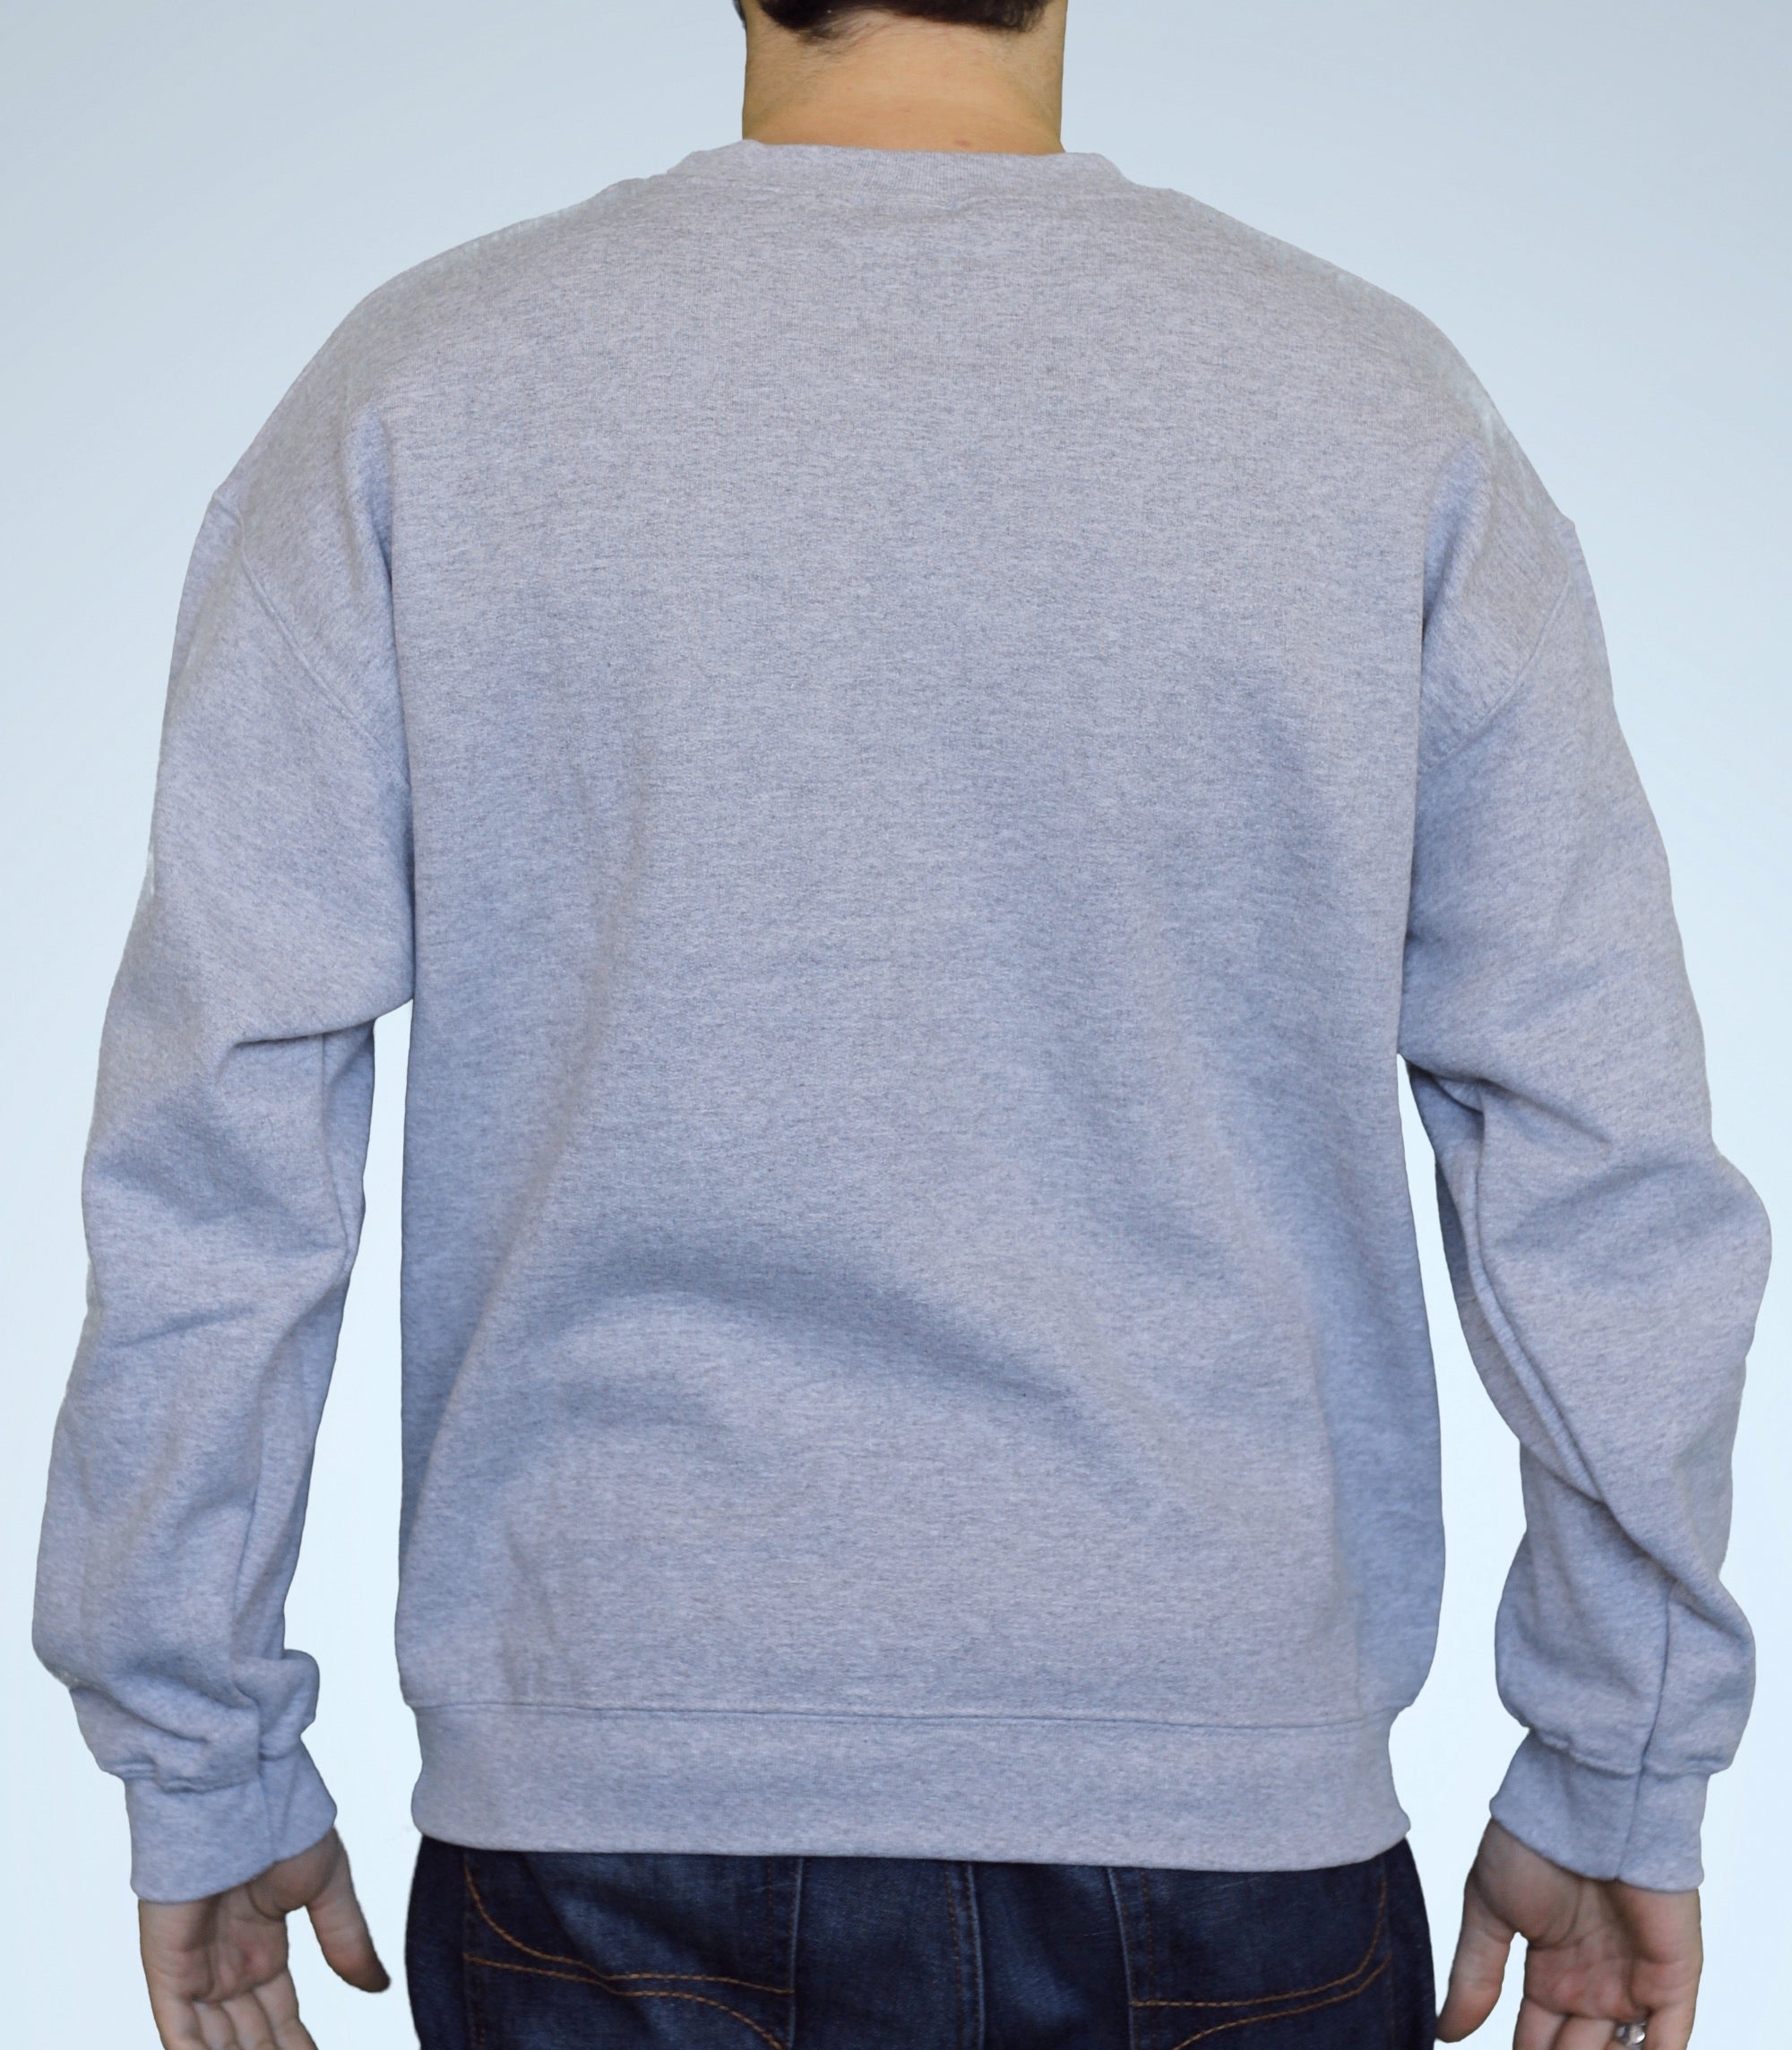 Grey Crew Neck Sweater